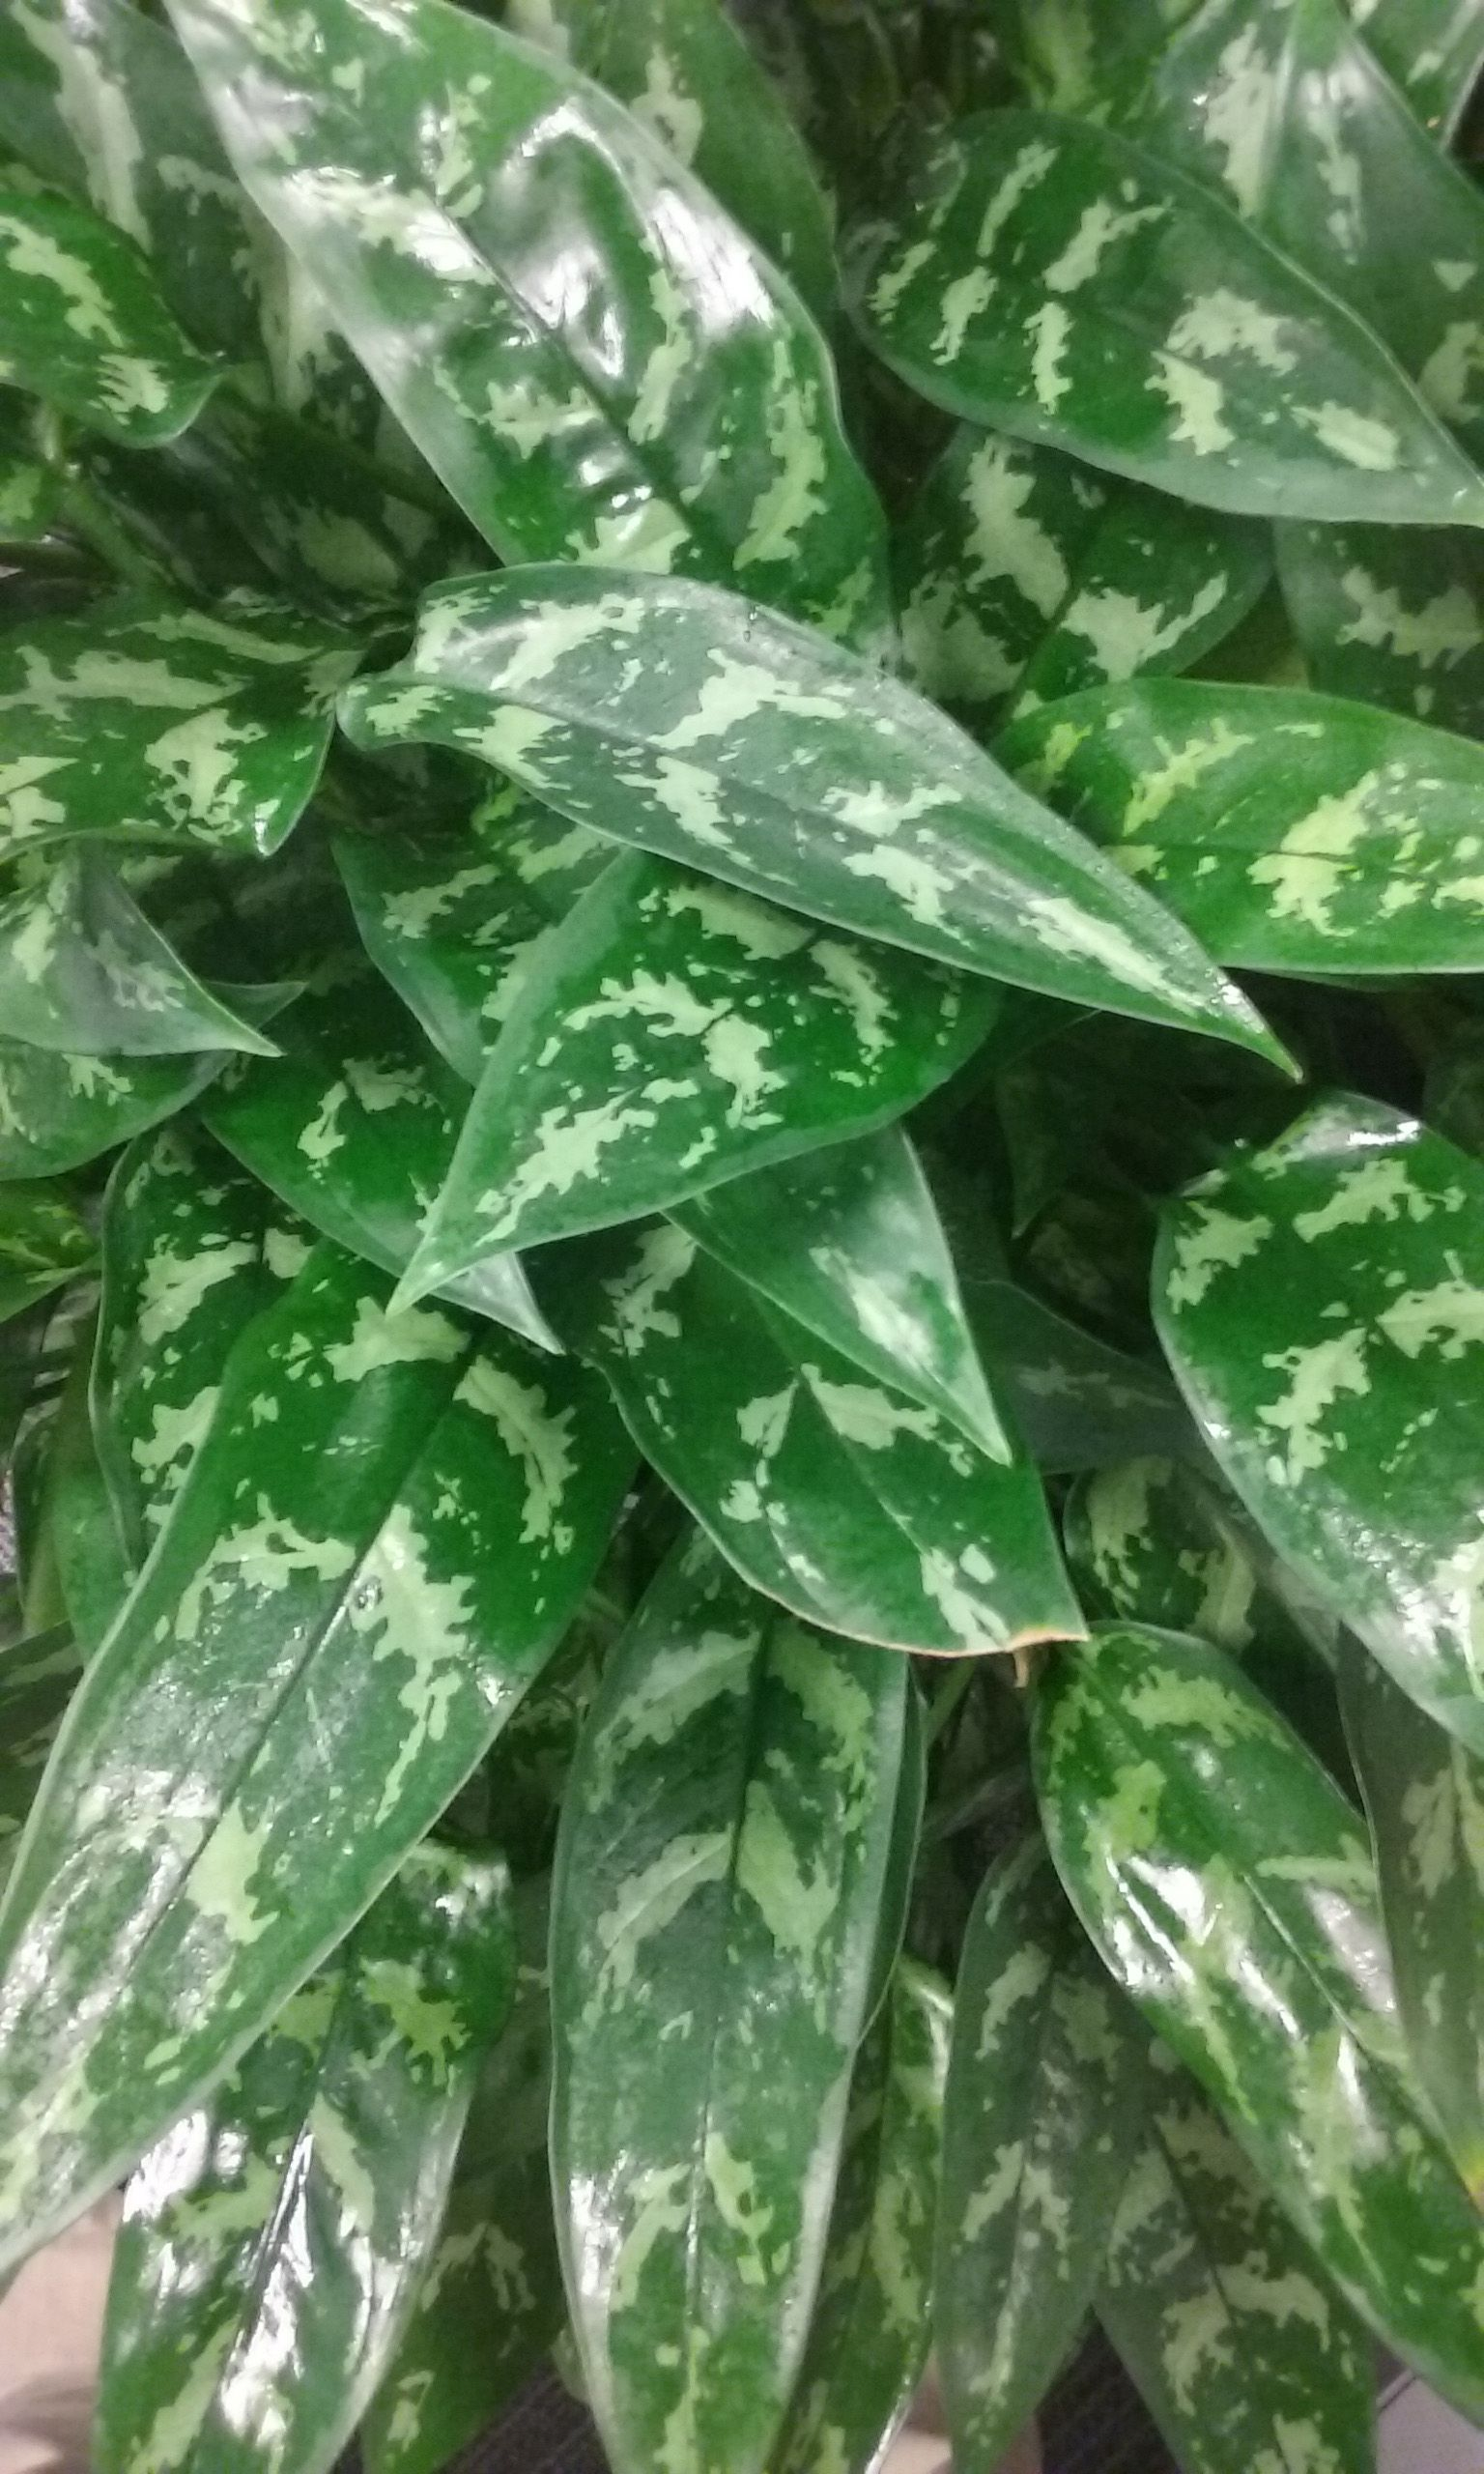 This in the Aglaonema